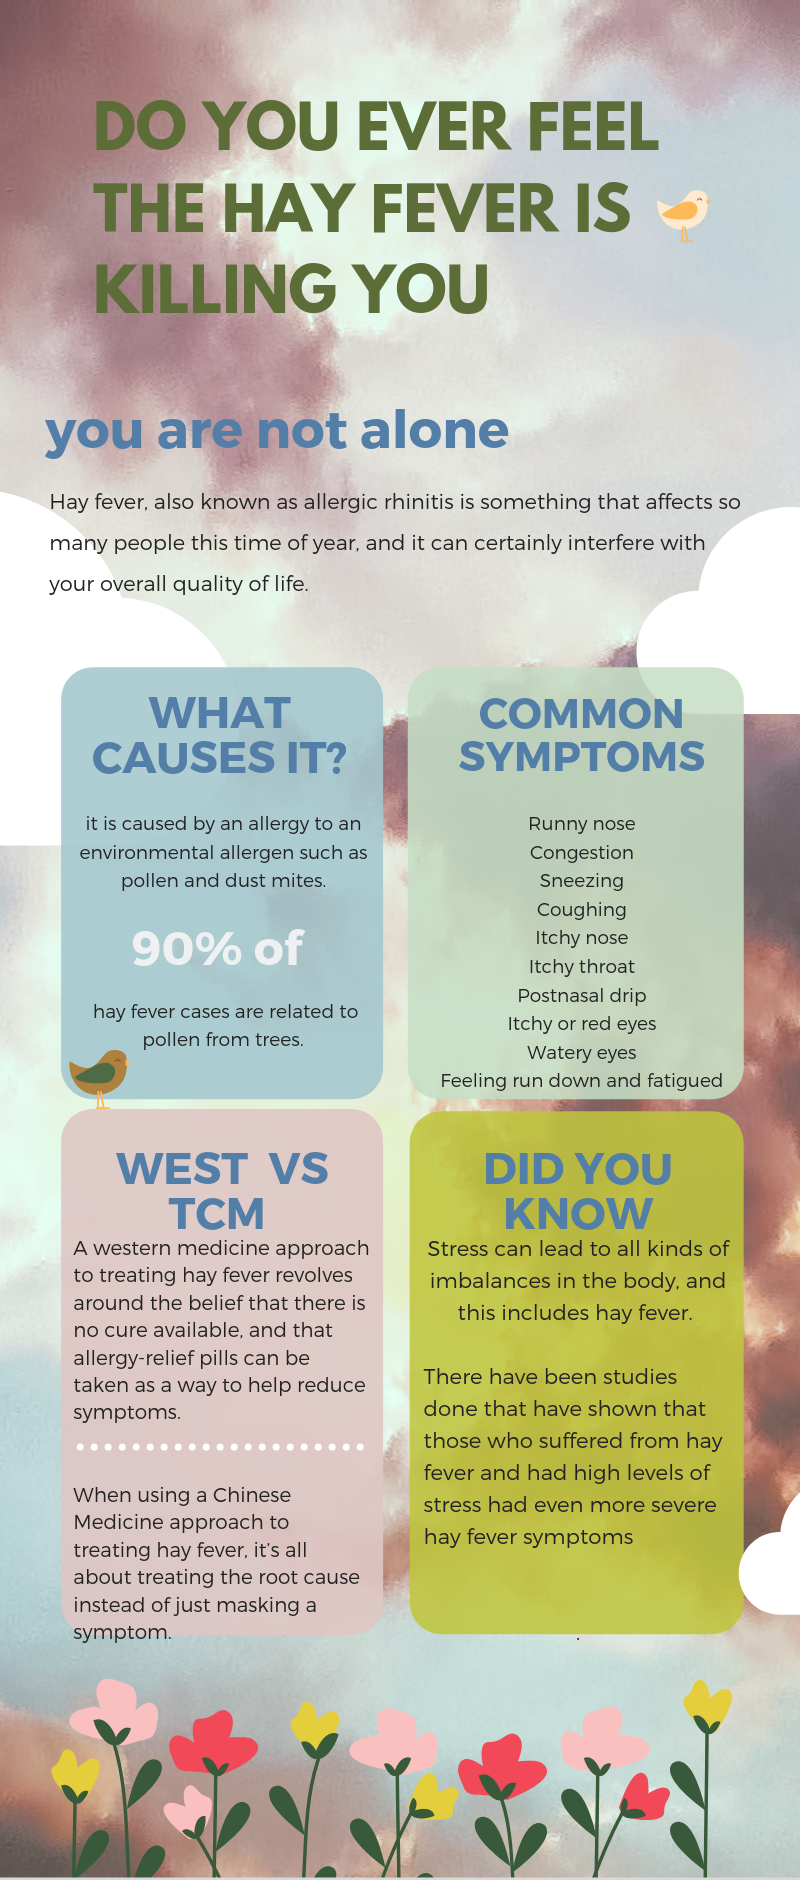 treat hayfever naturally with chinese medicine